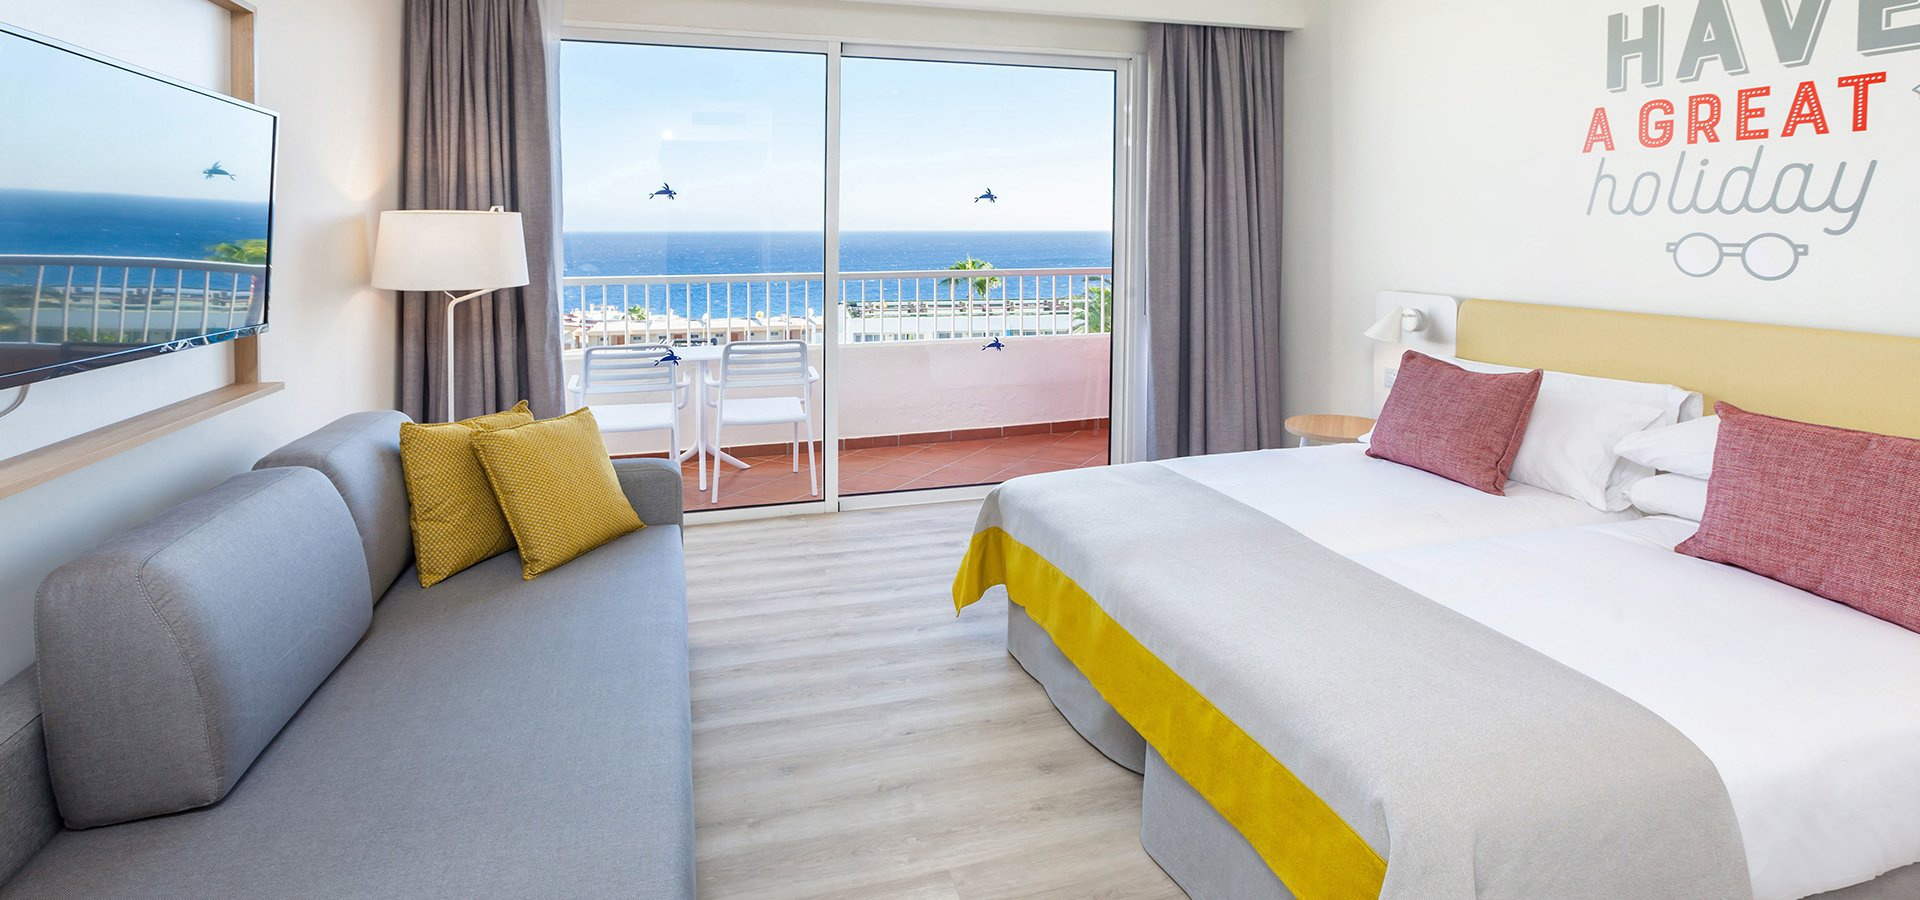 Descubre Abora Interclub atlantic, tu acogedor alojamiento - Abora Interclub Atlantic by Lopesan Hotels - Gran Canaria